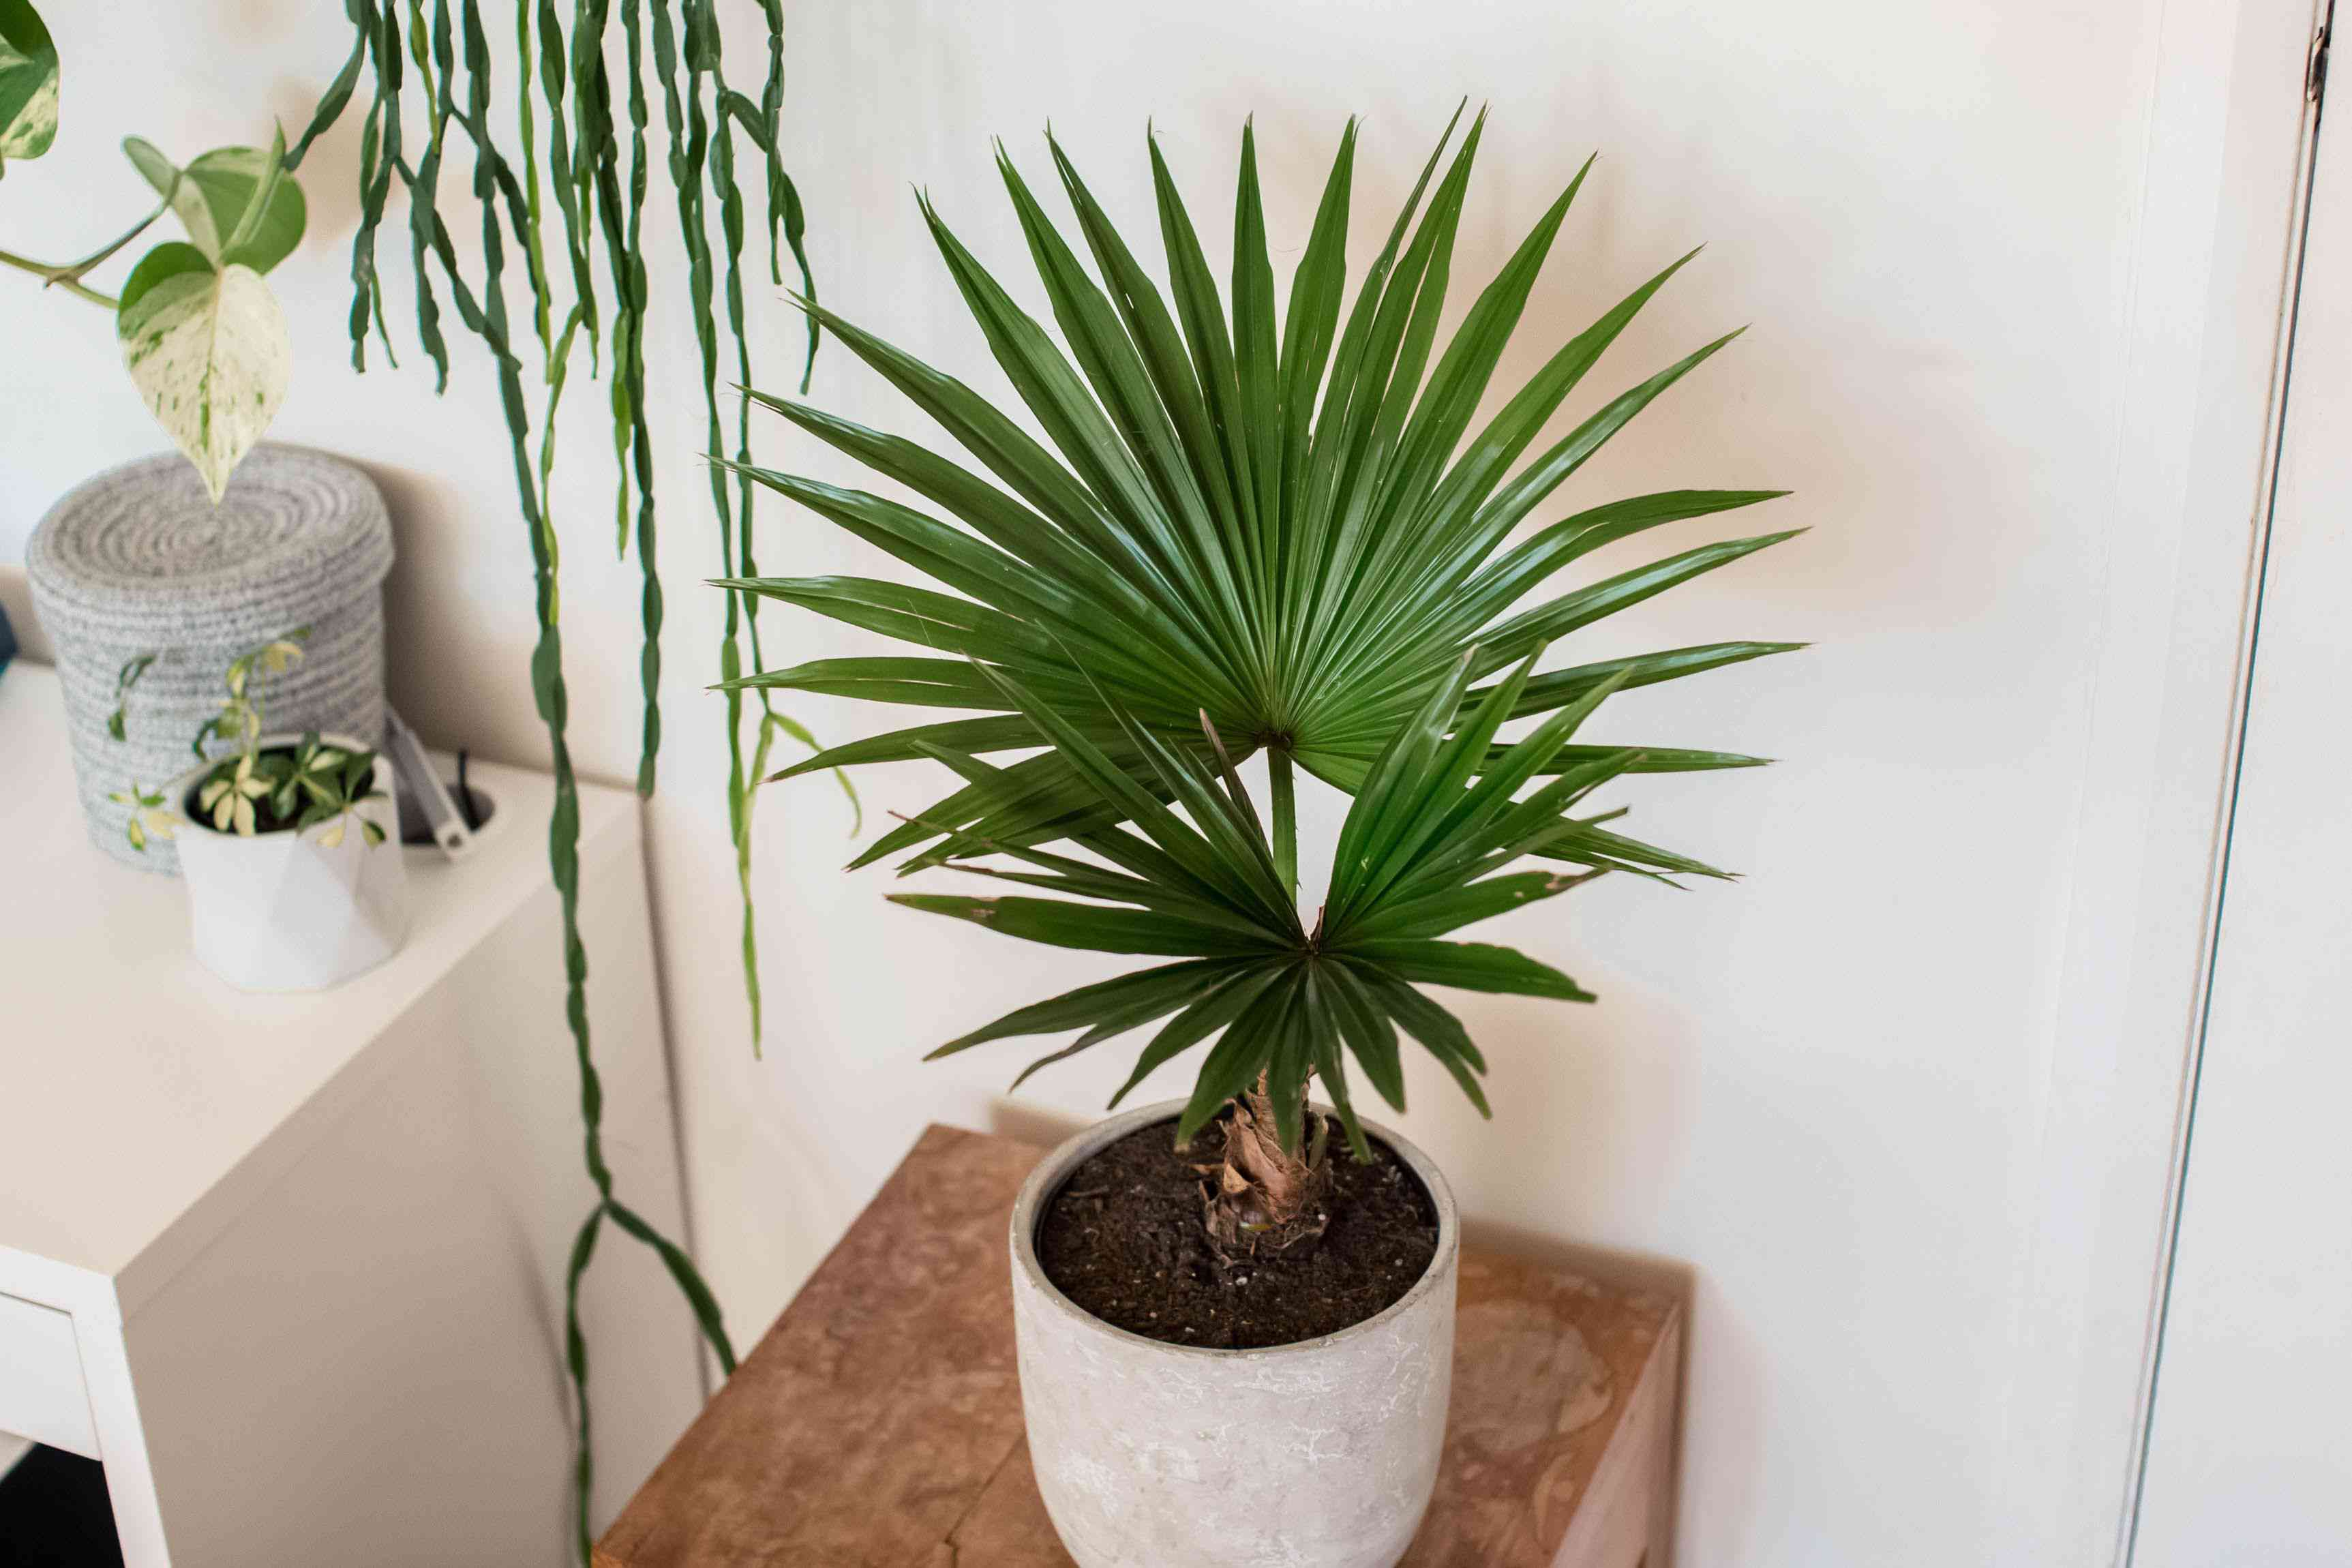 Chinese fan palm with feathery frond leaves in white ceramic pot next to houseplants